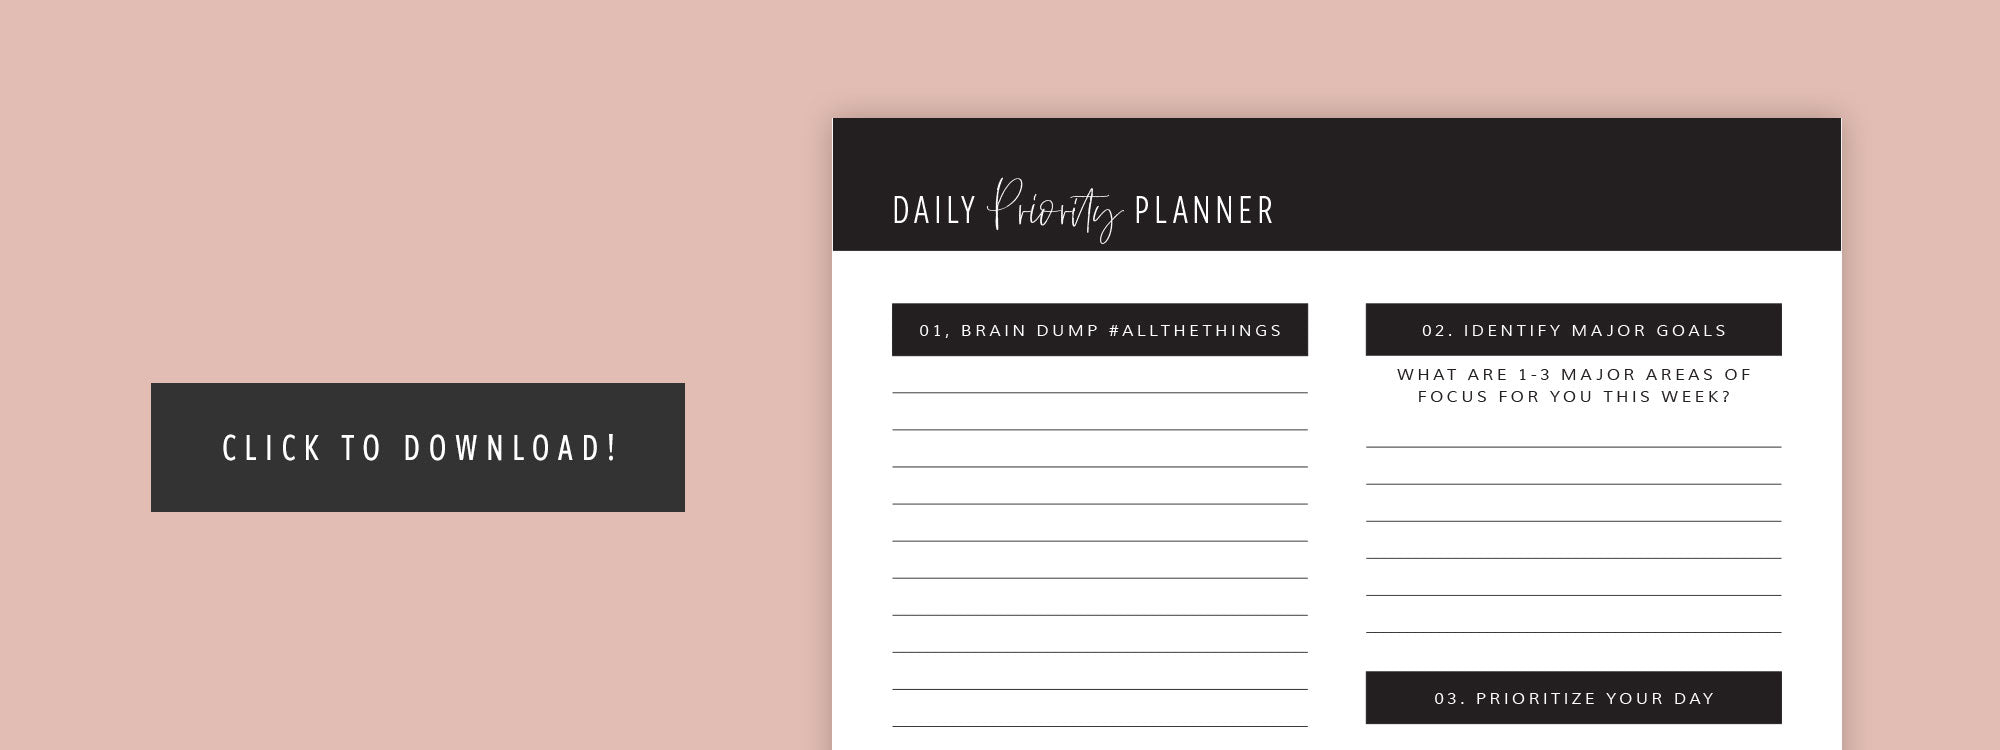 2019 Daily Priority Planner printable